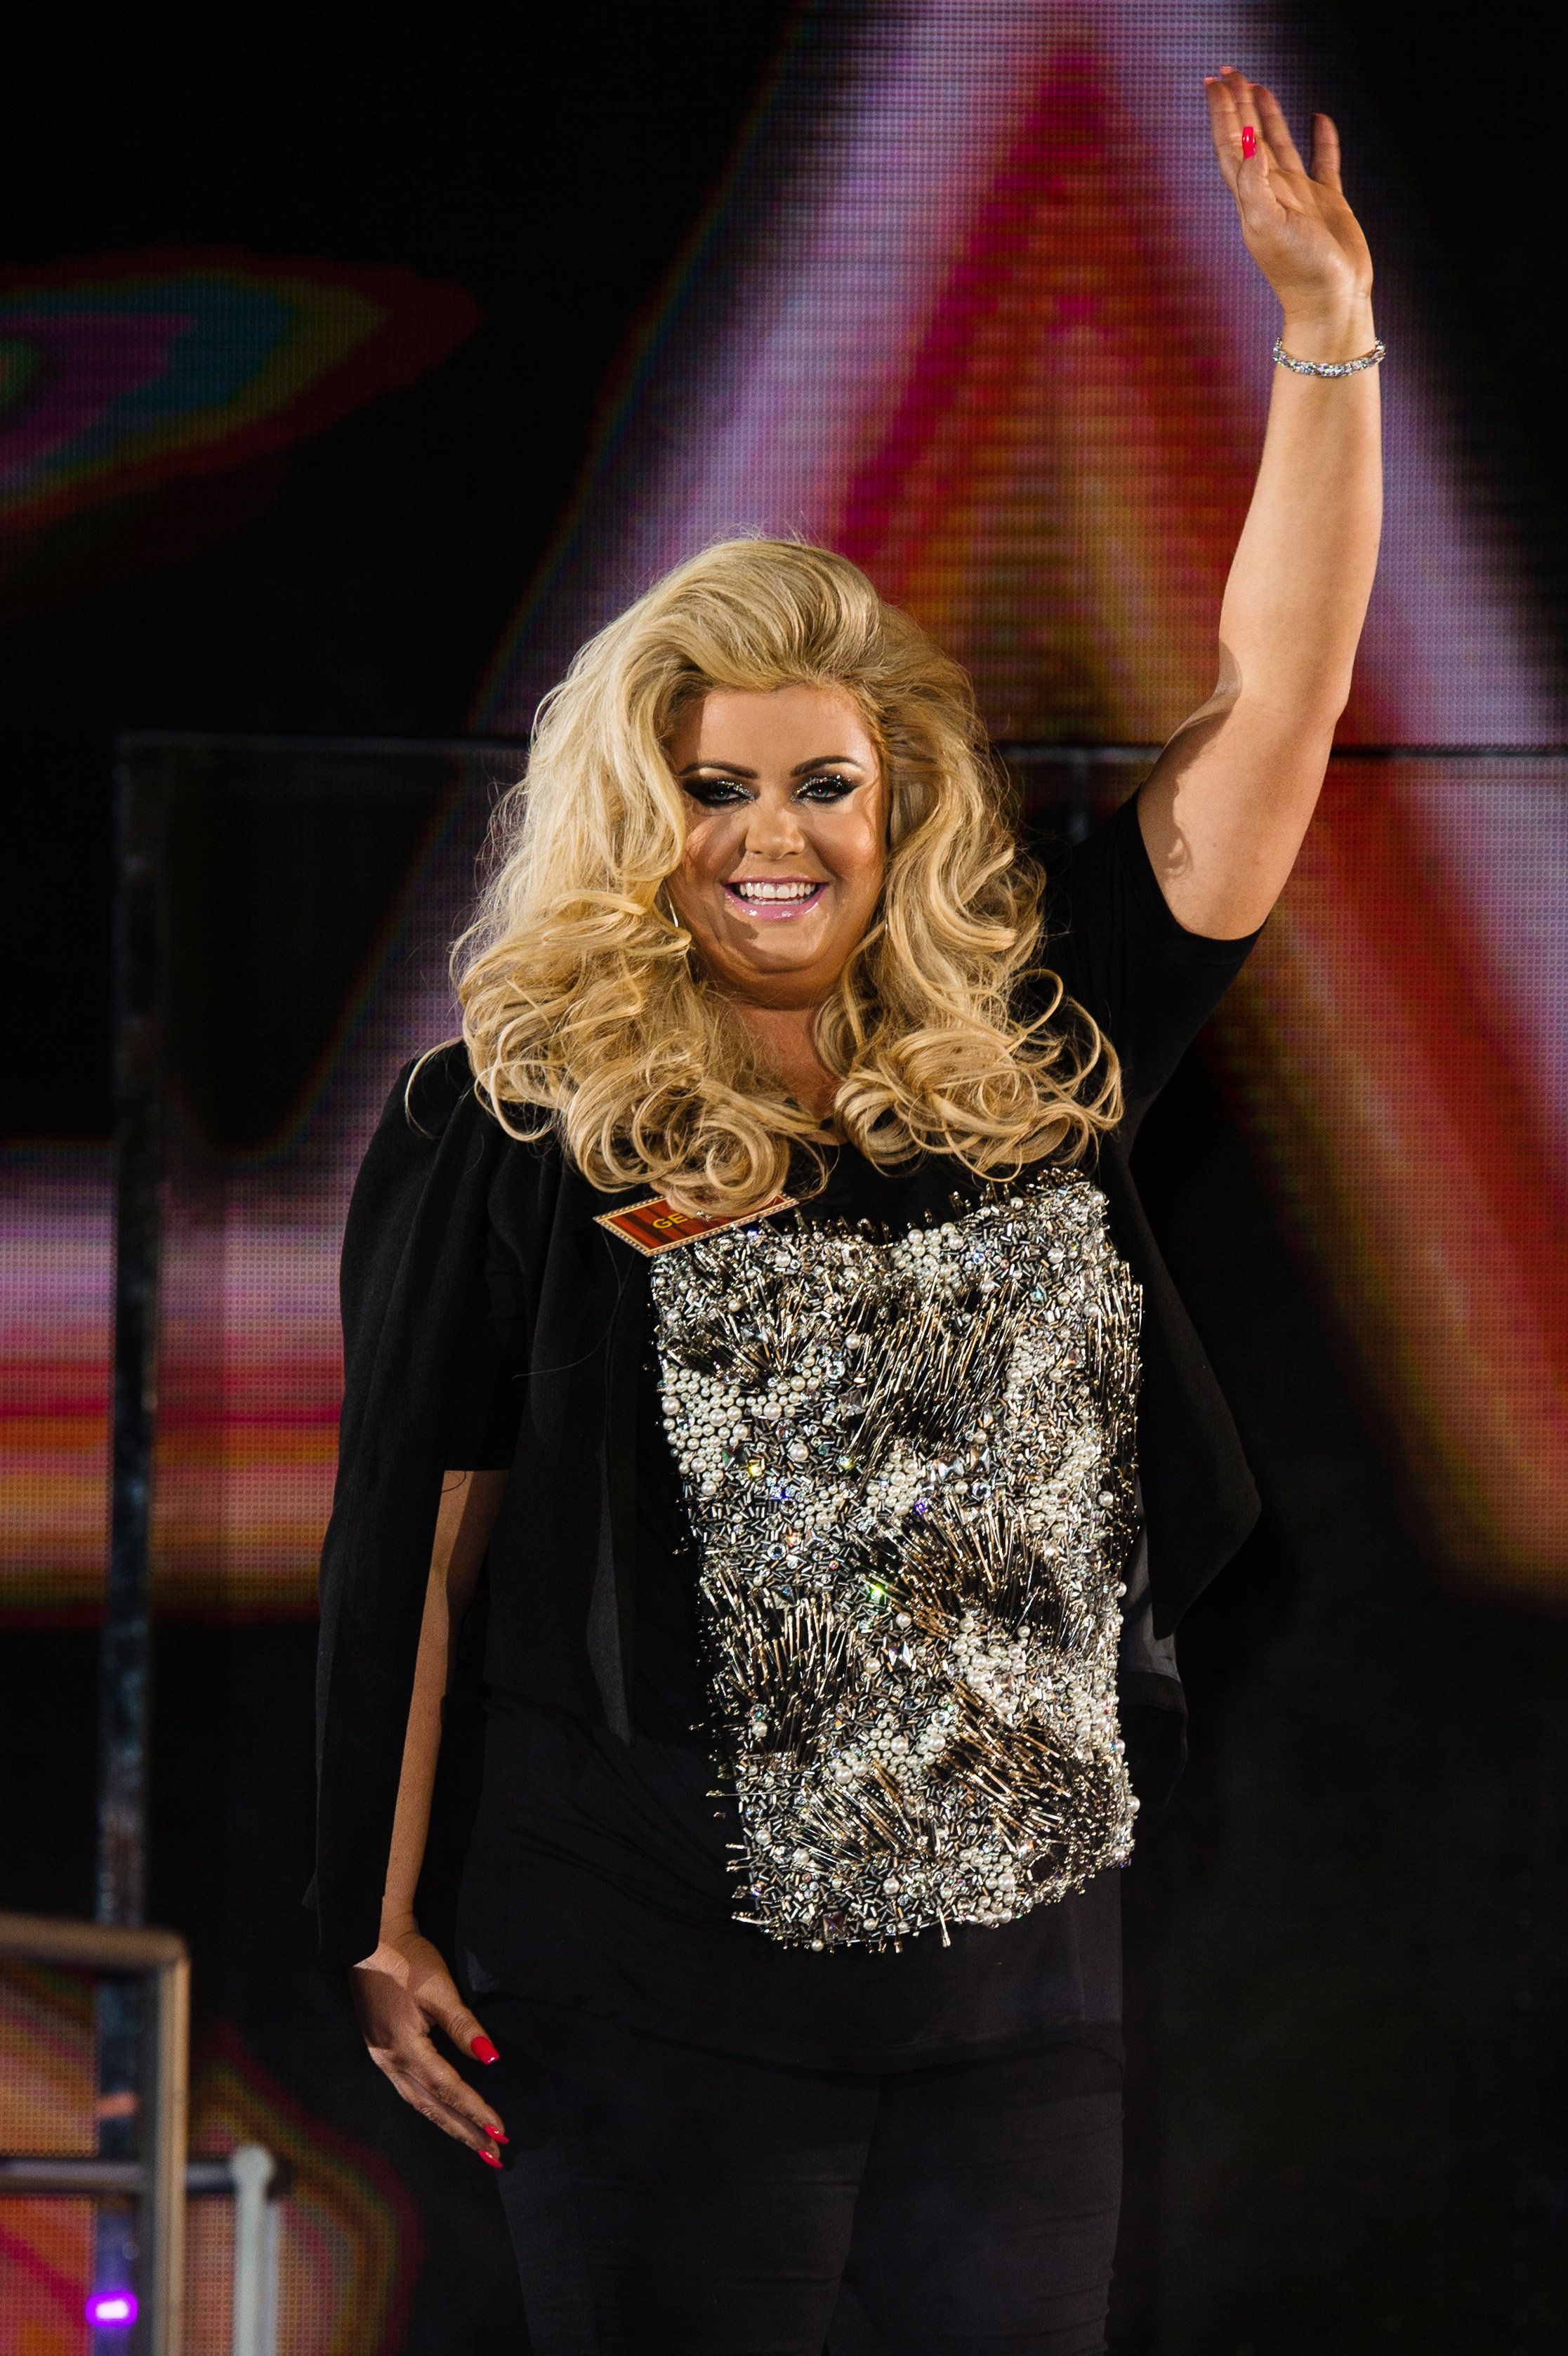 19 Times Gemma Collins Was The Most Ridiculous Human Being On The Planet